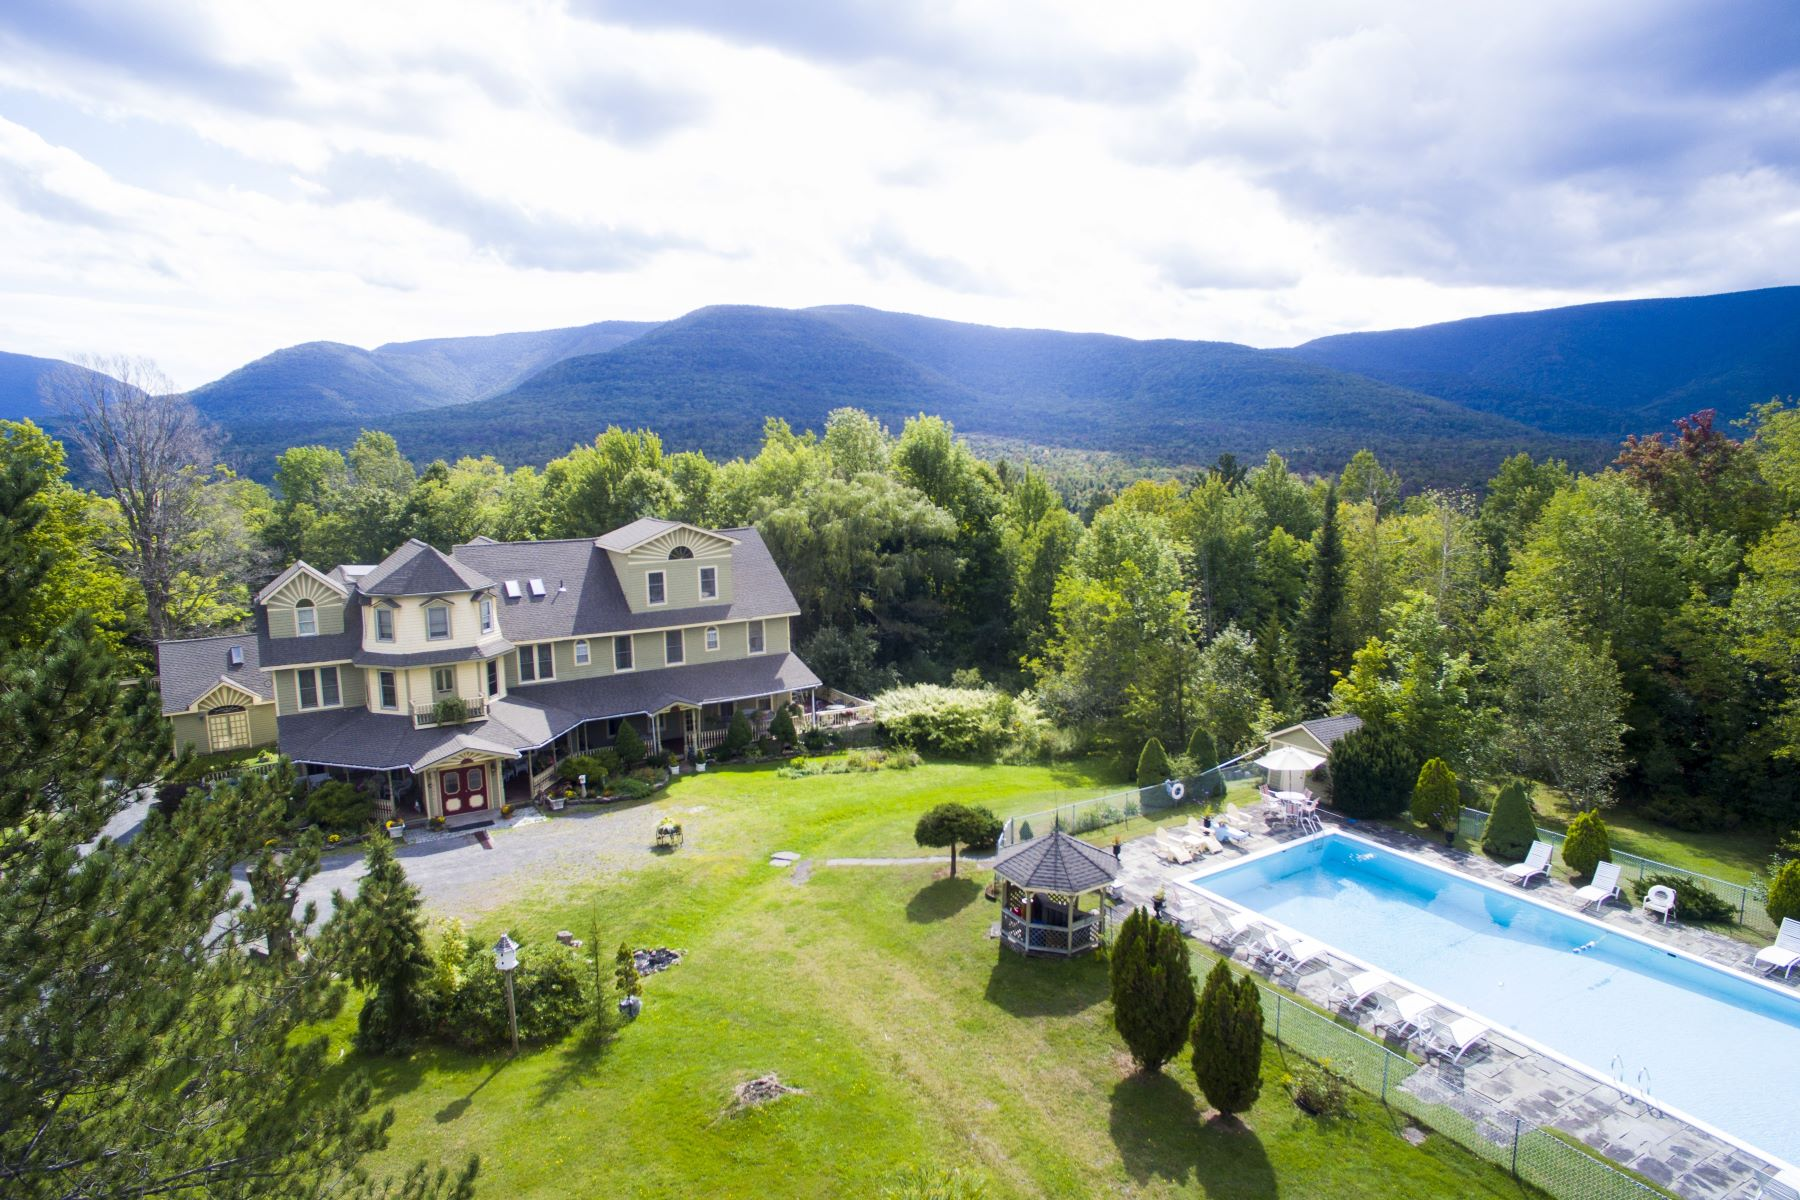 Single Family Homes for Sale at The Washington Irving Inn 6629 Route 23a Tannersville, New York 12442 United States